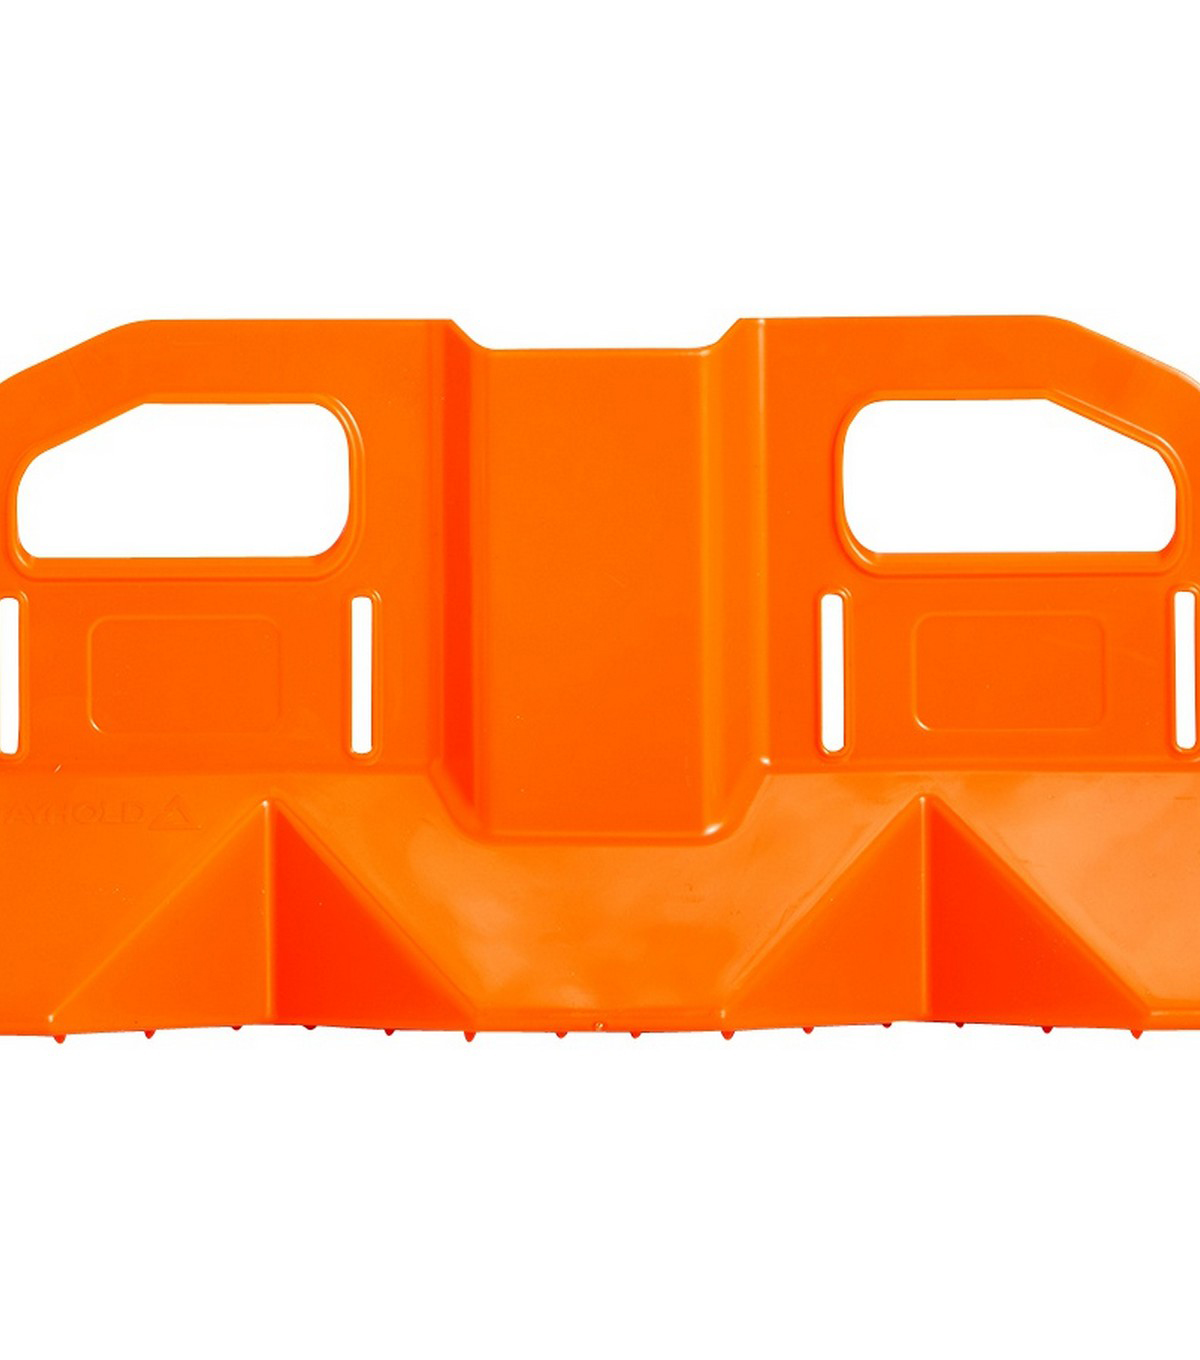 Stayhold 13.75\u0027\u0027x7.5\u0027\u0027 Sidekick Modular Cargo Organizer-Orange